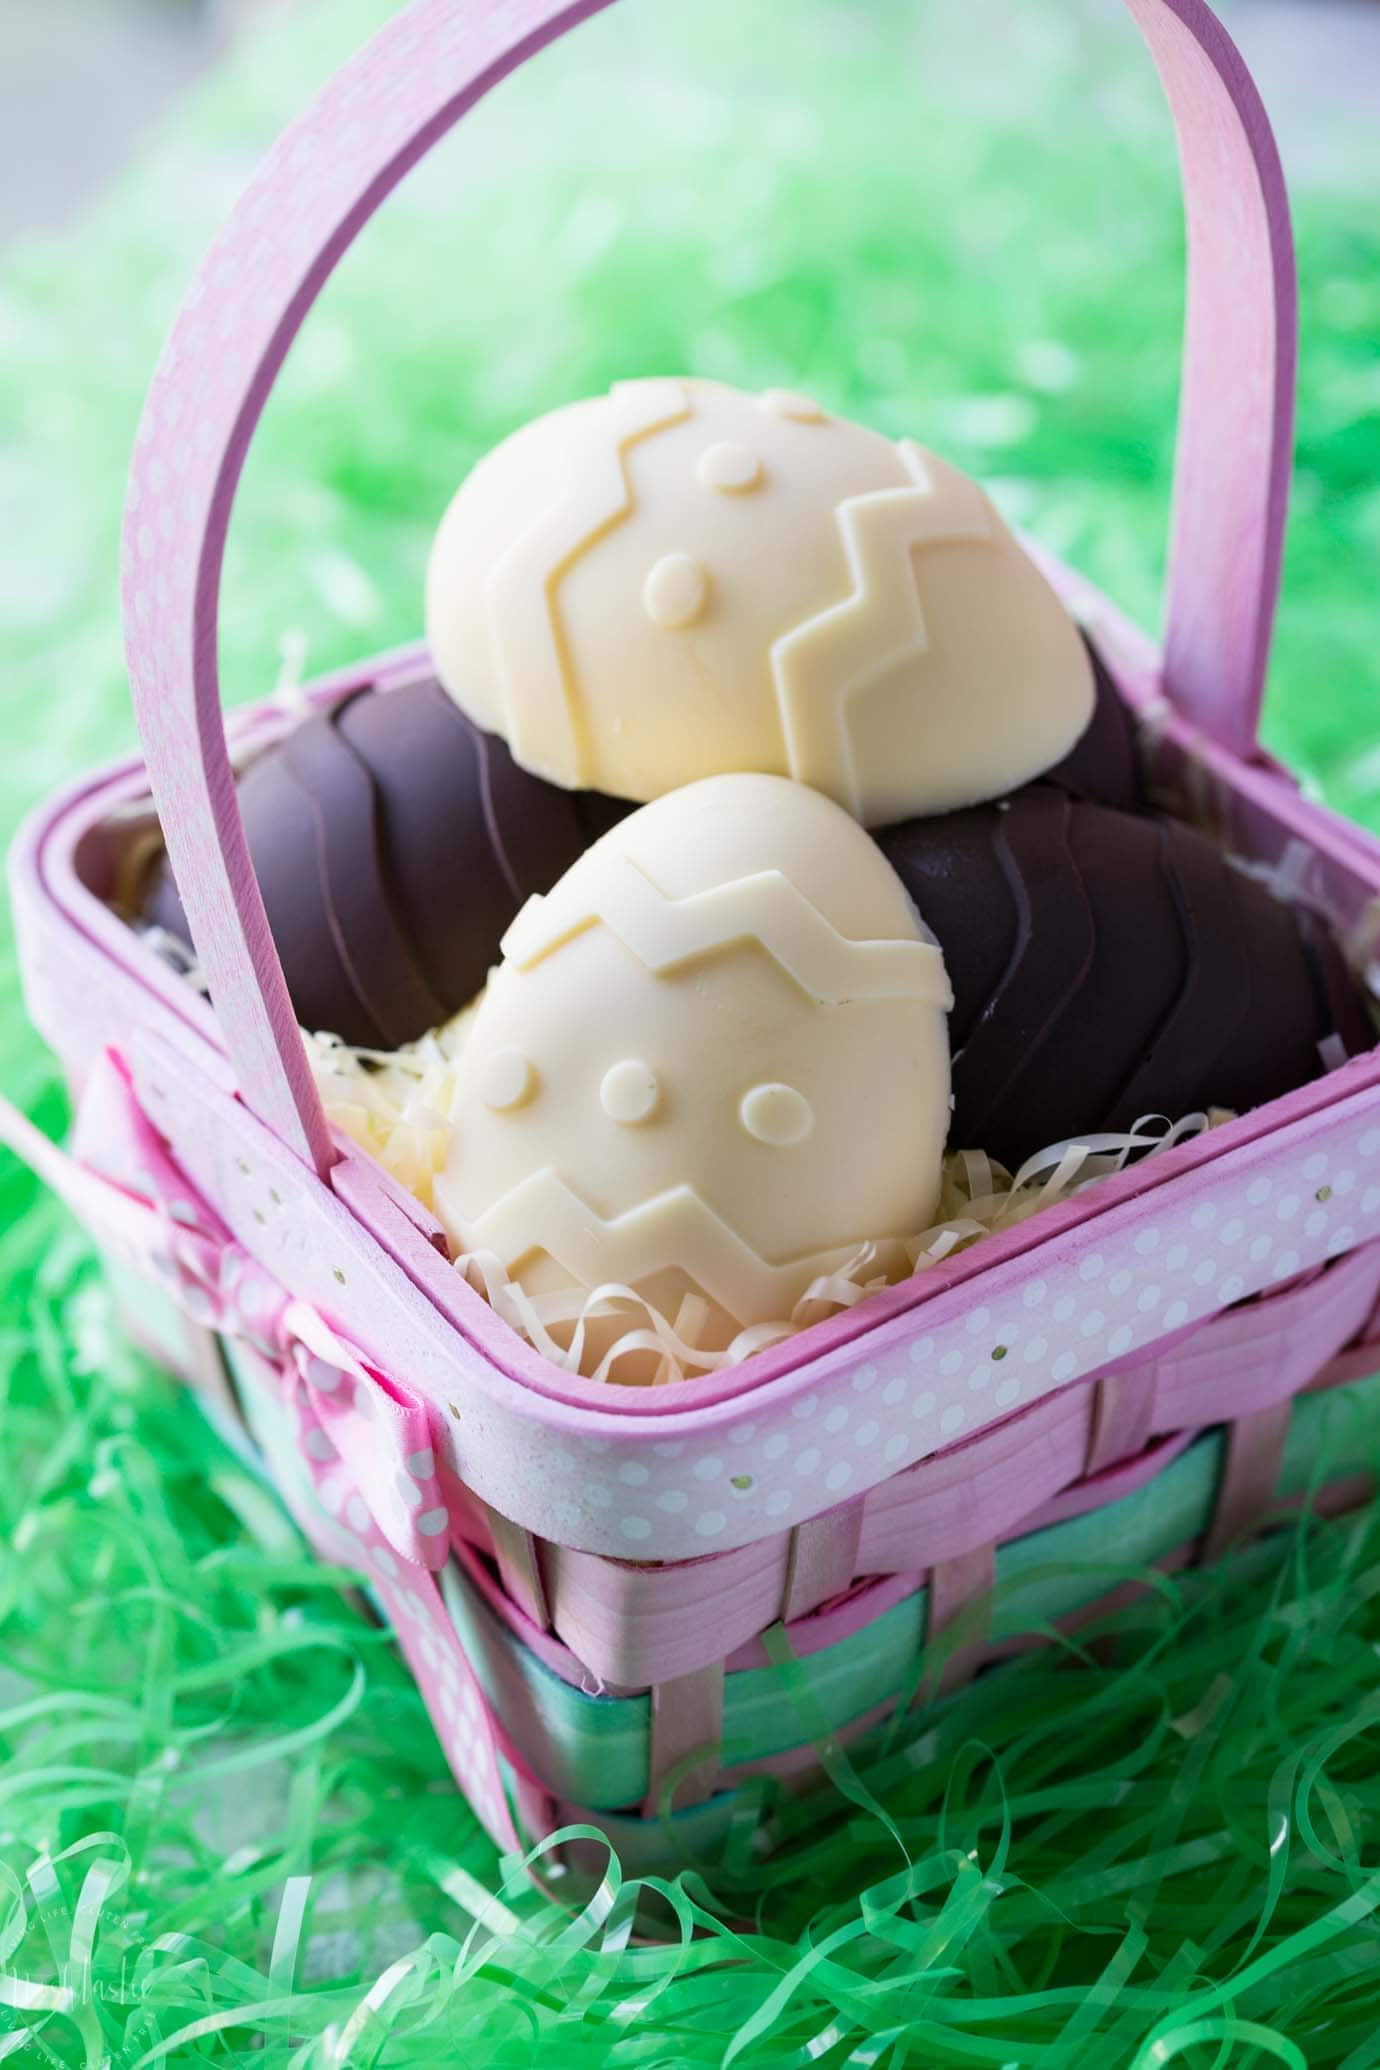 Homemade chocolate eggs stuffed with Cheesecake, so FUN and NO BAKE! The kids will love it, A perfect Easter Candy that's gluten free too!